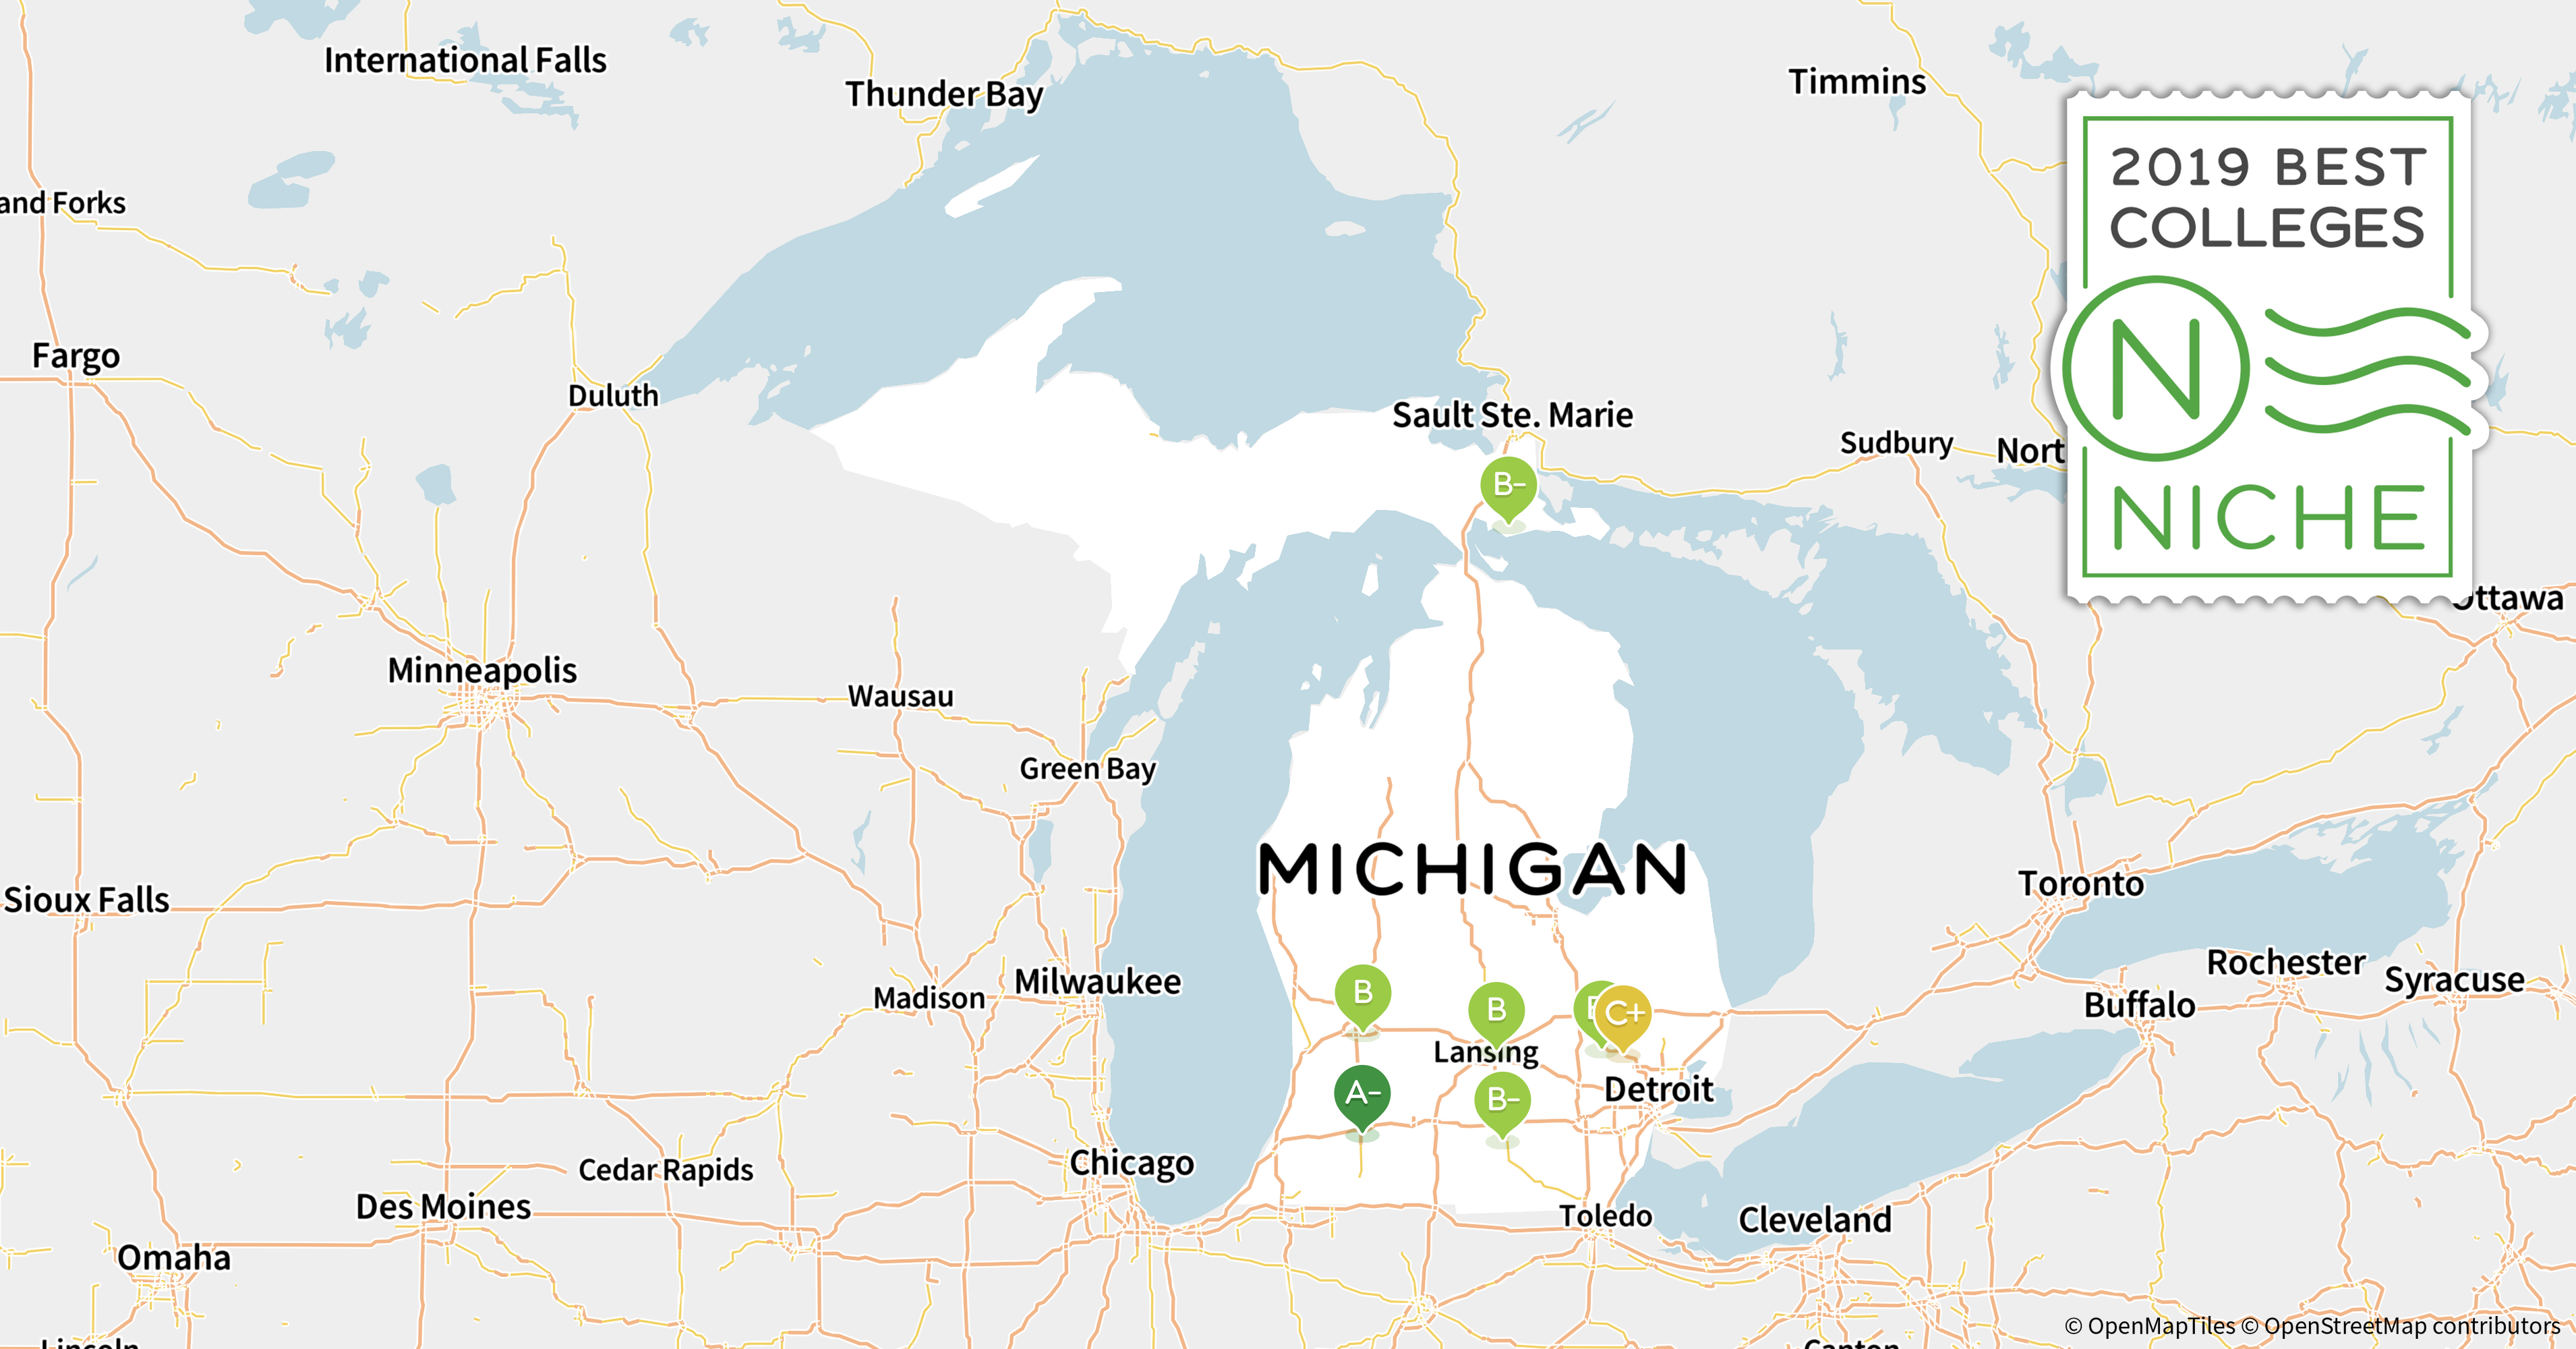 2019 Safest College Campuses in Michigan - Niche